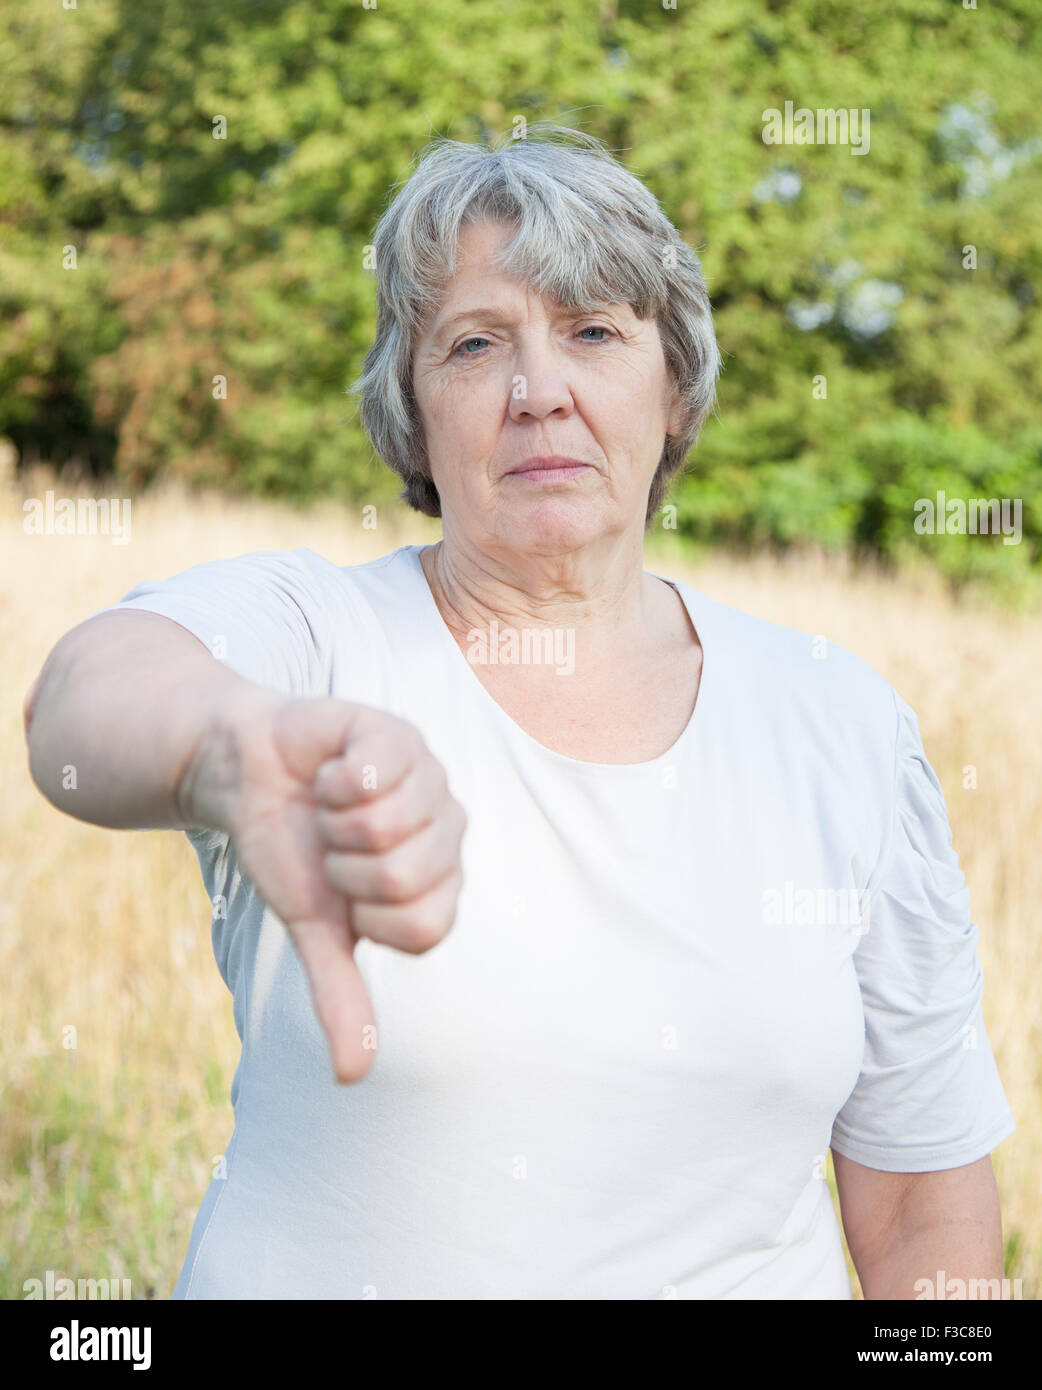 Old age woman showing thumbs down - Stock Image